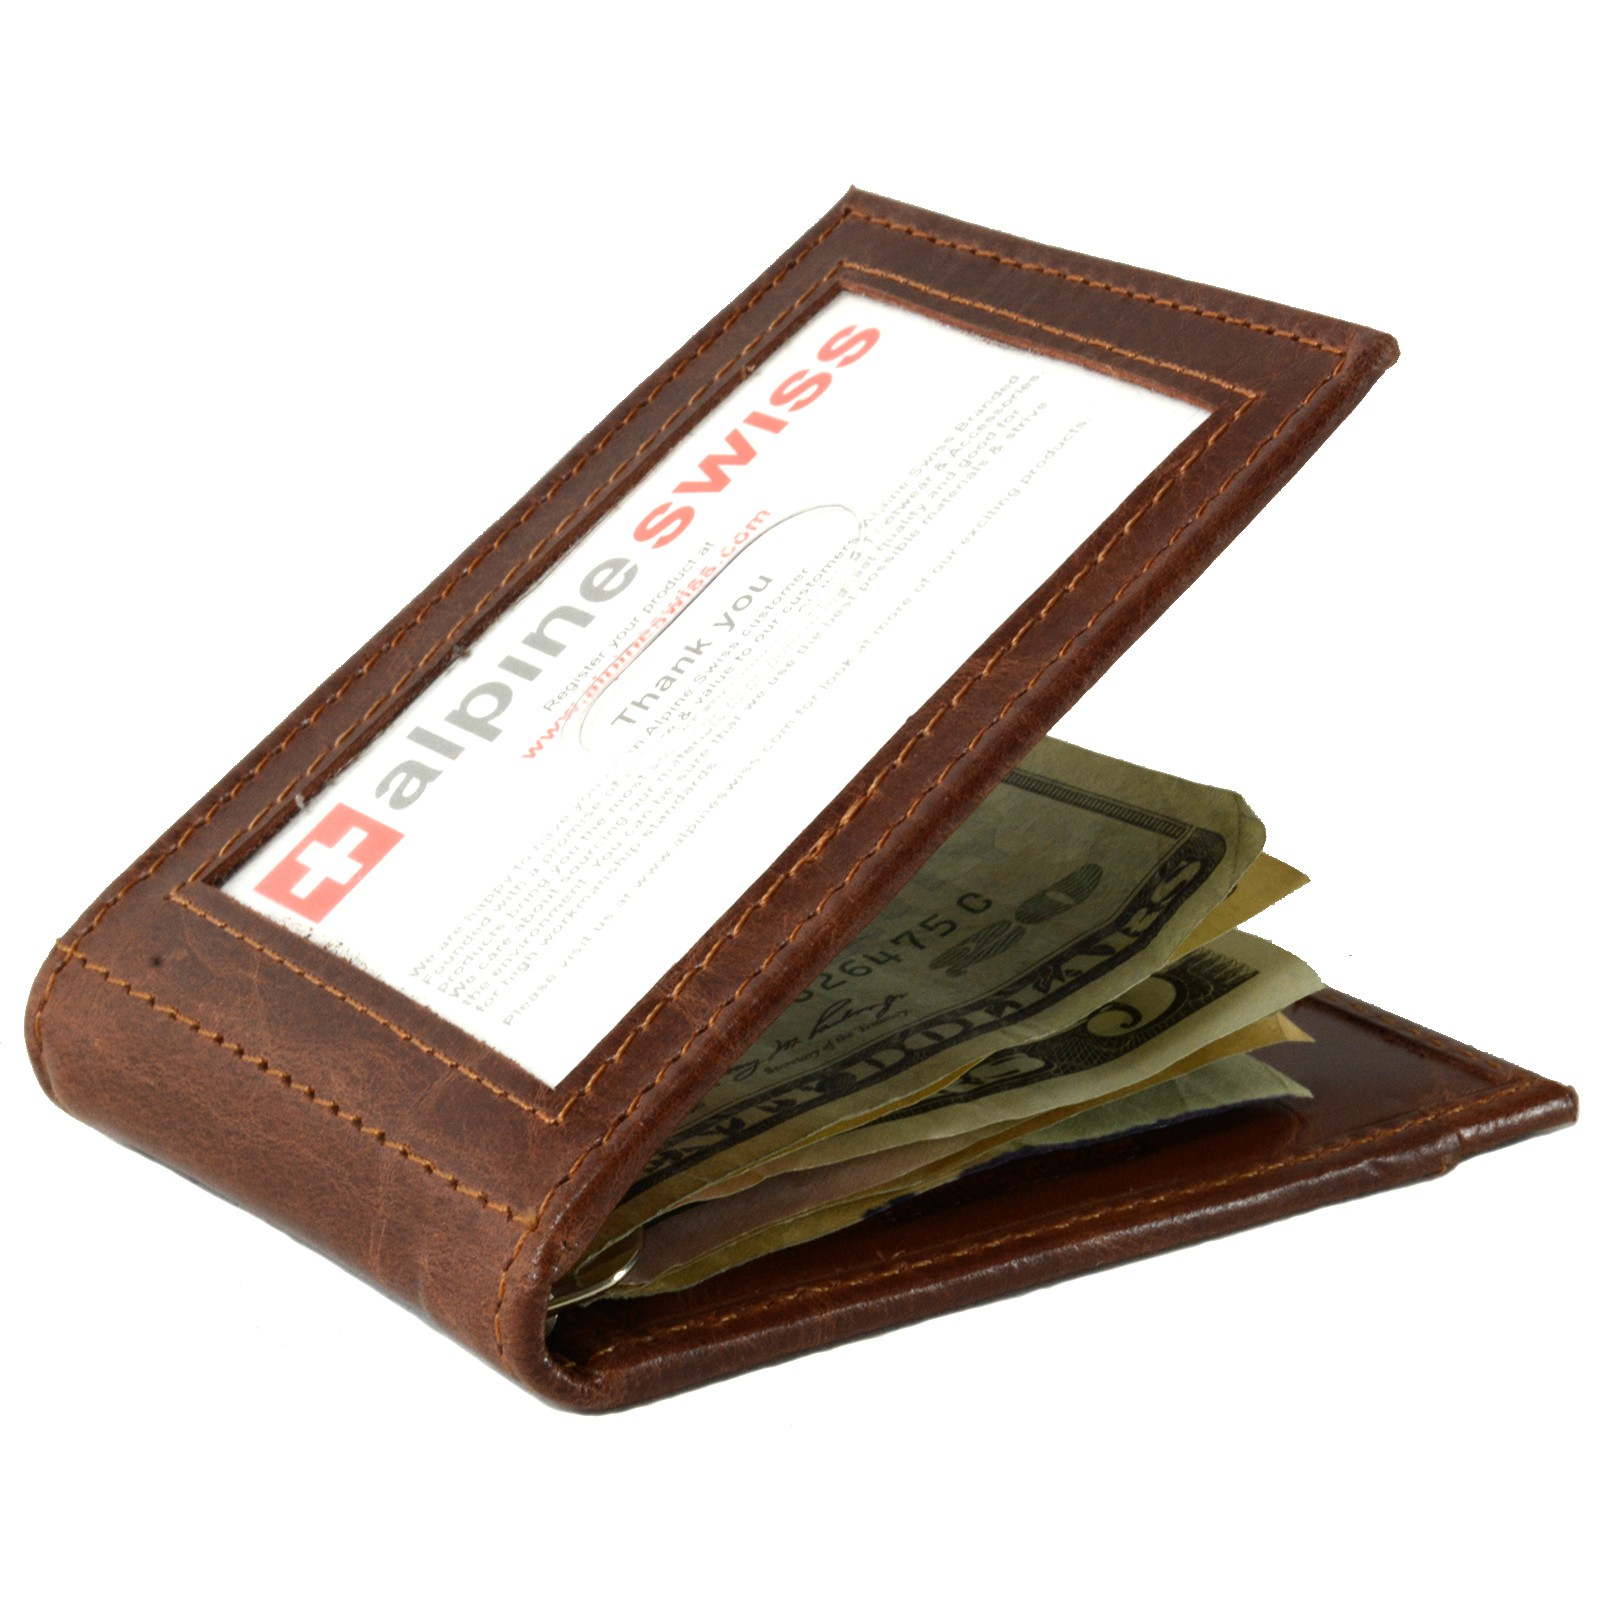 Alpine-Swiss-Mens-Bifold-Money-Clip-Spring-Loaded-Leather-ID-Front-Pocket-Wallet thumbnail 28